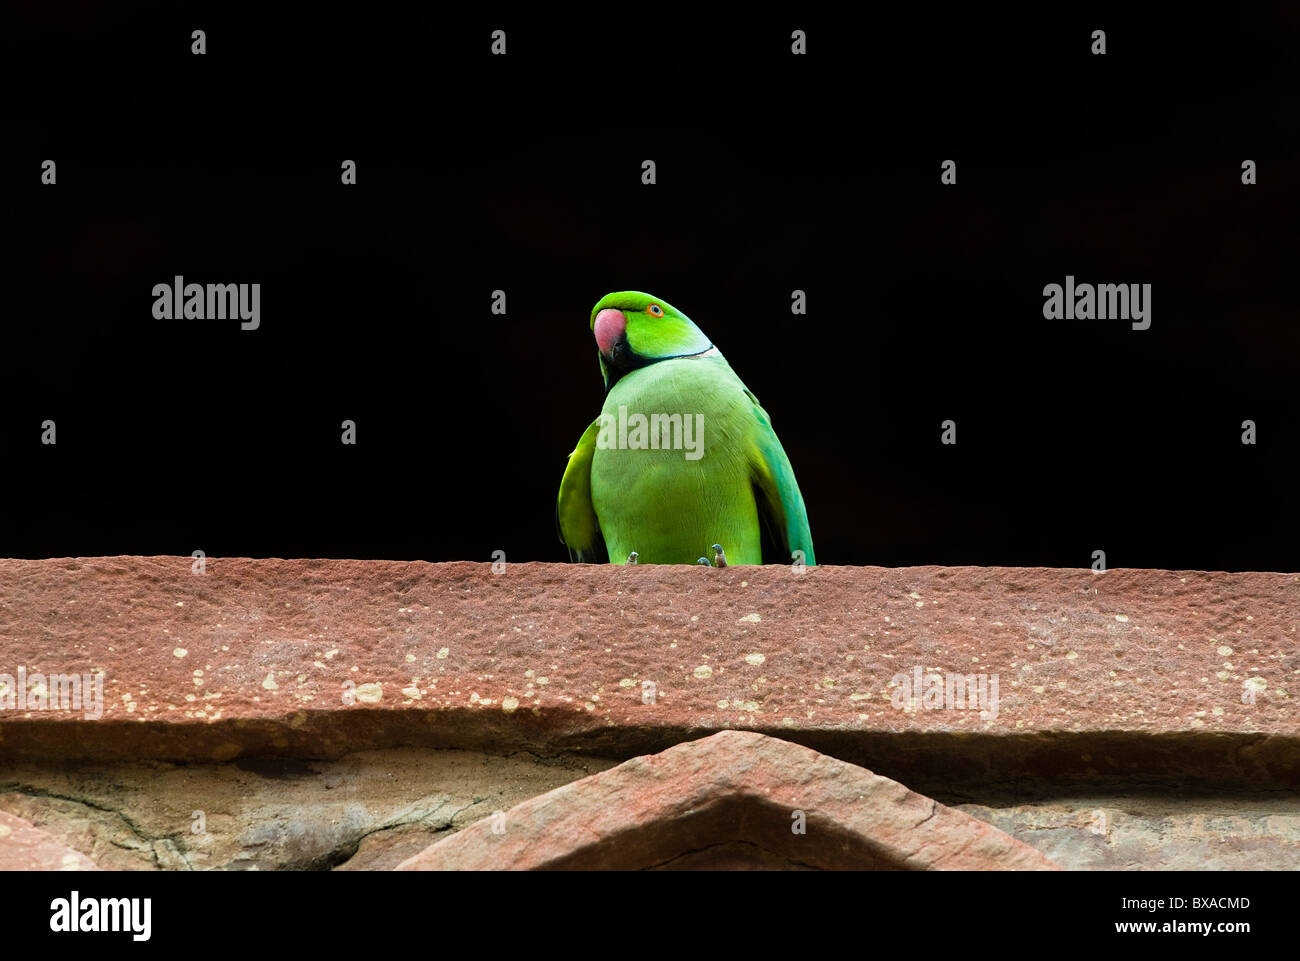 Indian Ringneck Parrot. - Stock Image